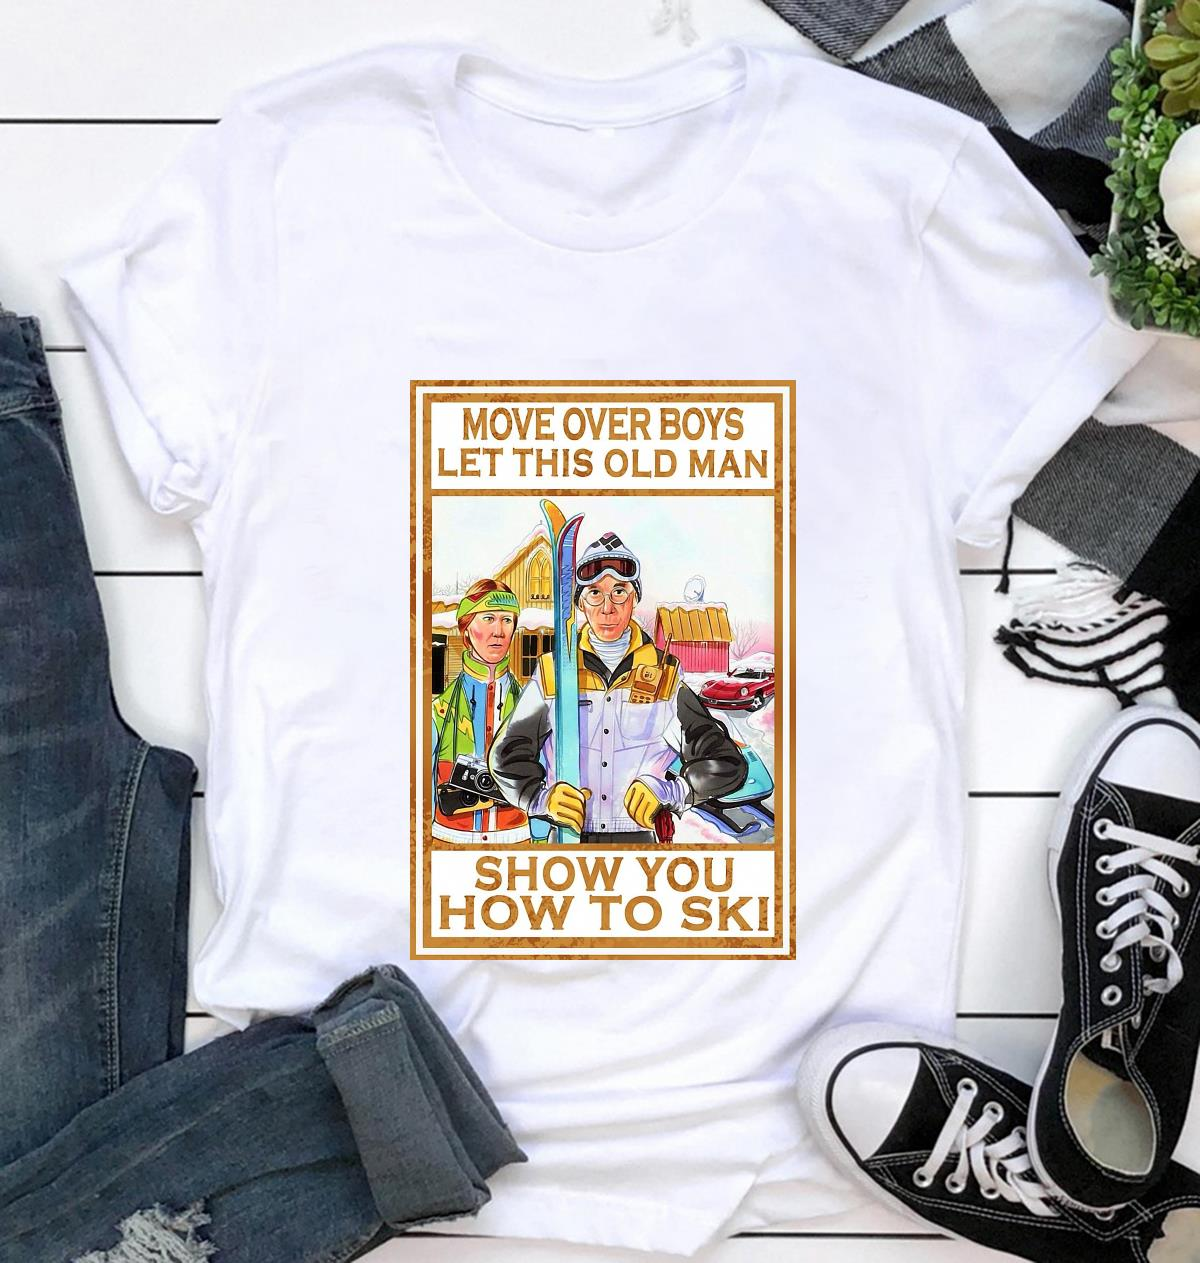 Move over boys let this old man show you how to ski wall art t-shirt